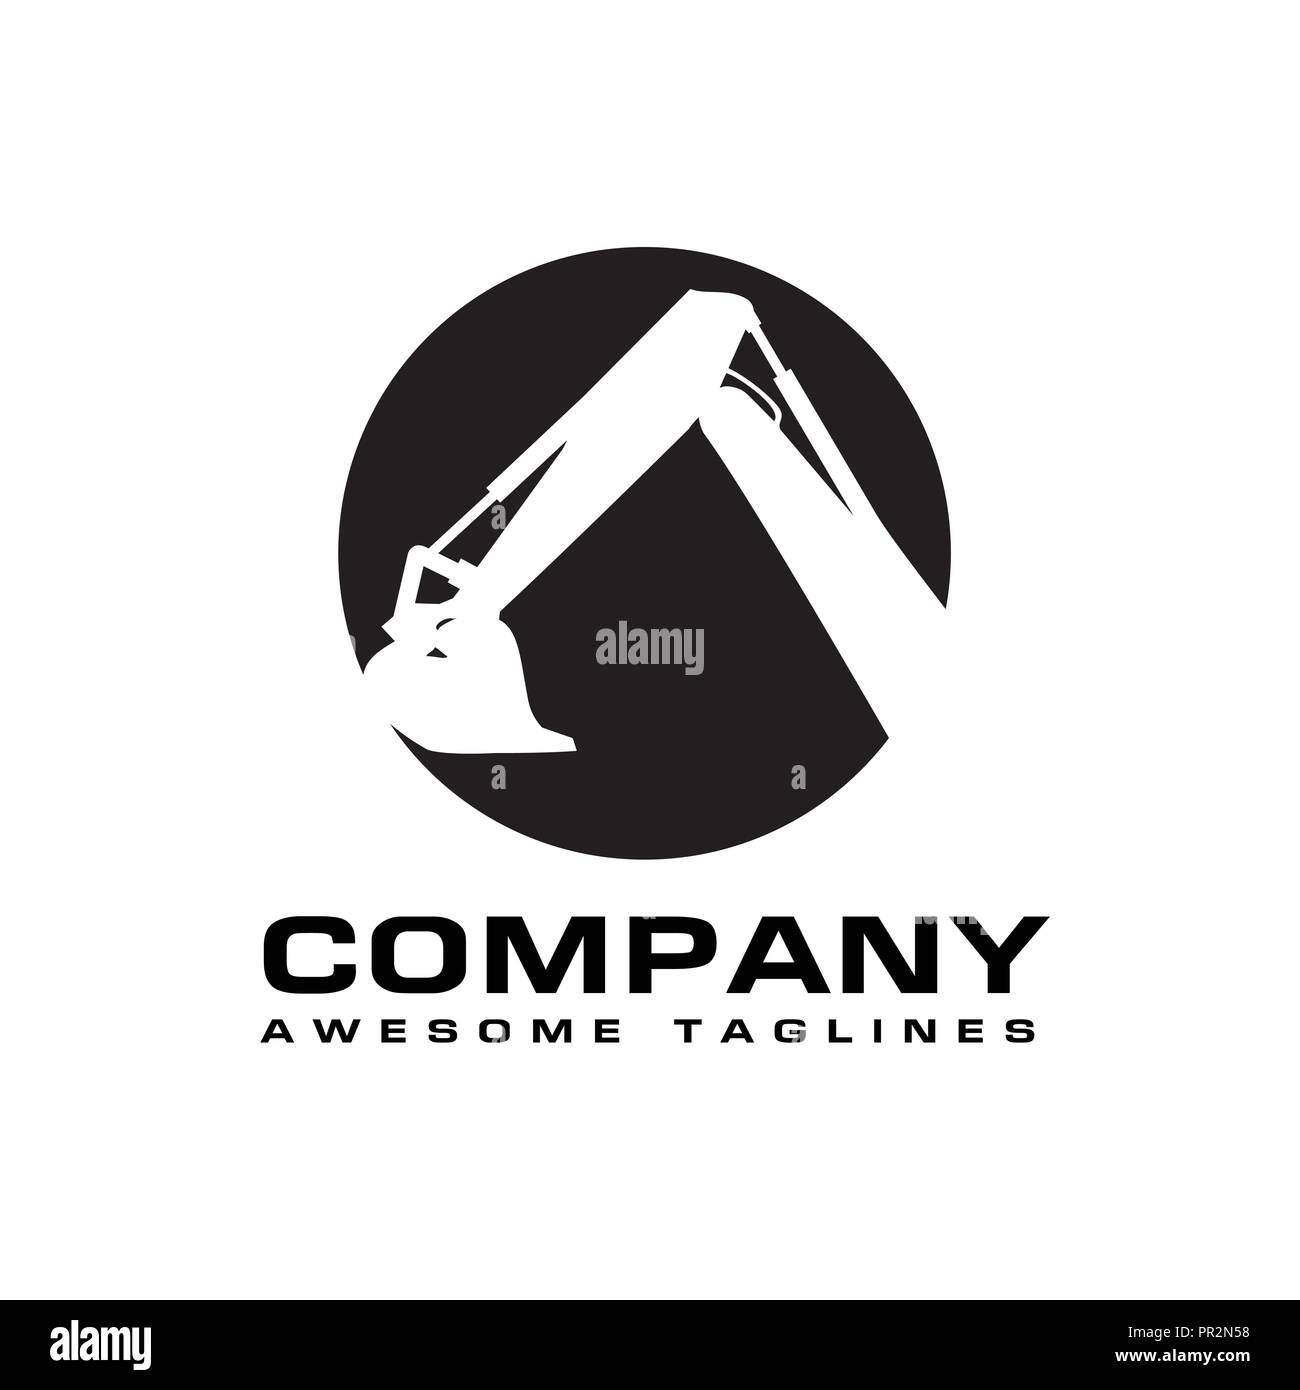 Excavators Construction machinery logo, Hydraulic mining excavator vector logo,. Heavy construction equipment symbol with boom dipper and bucket - Stock Image